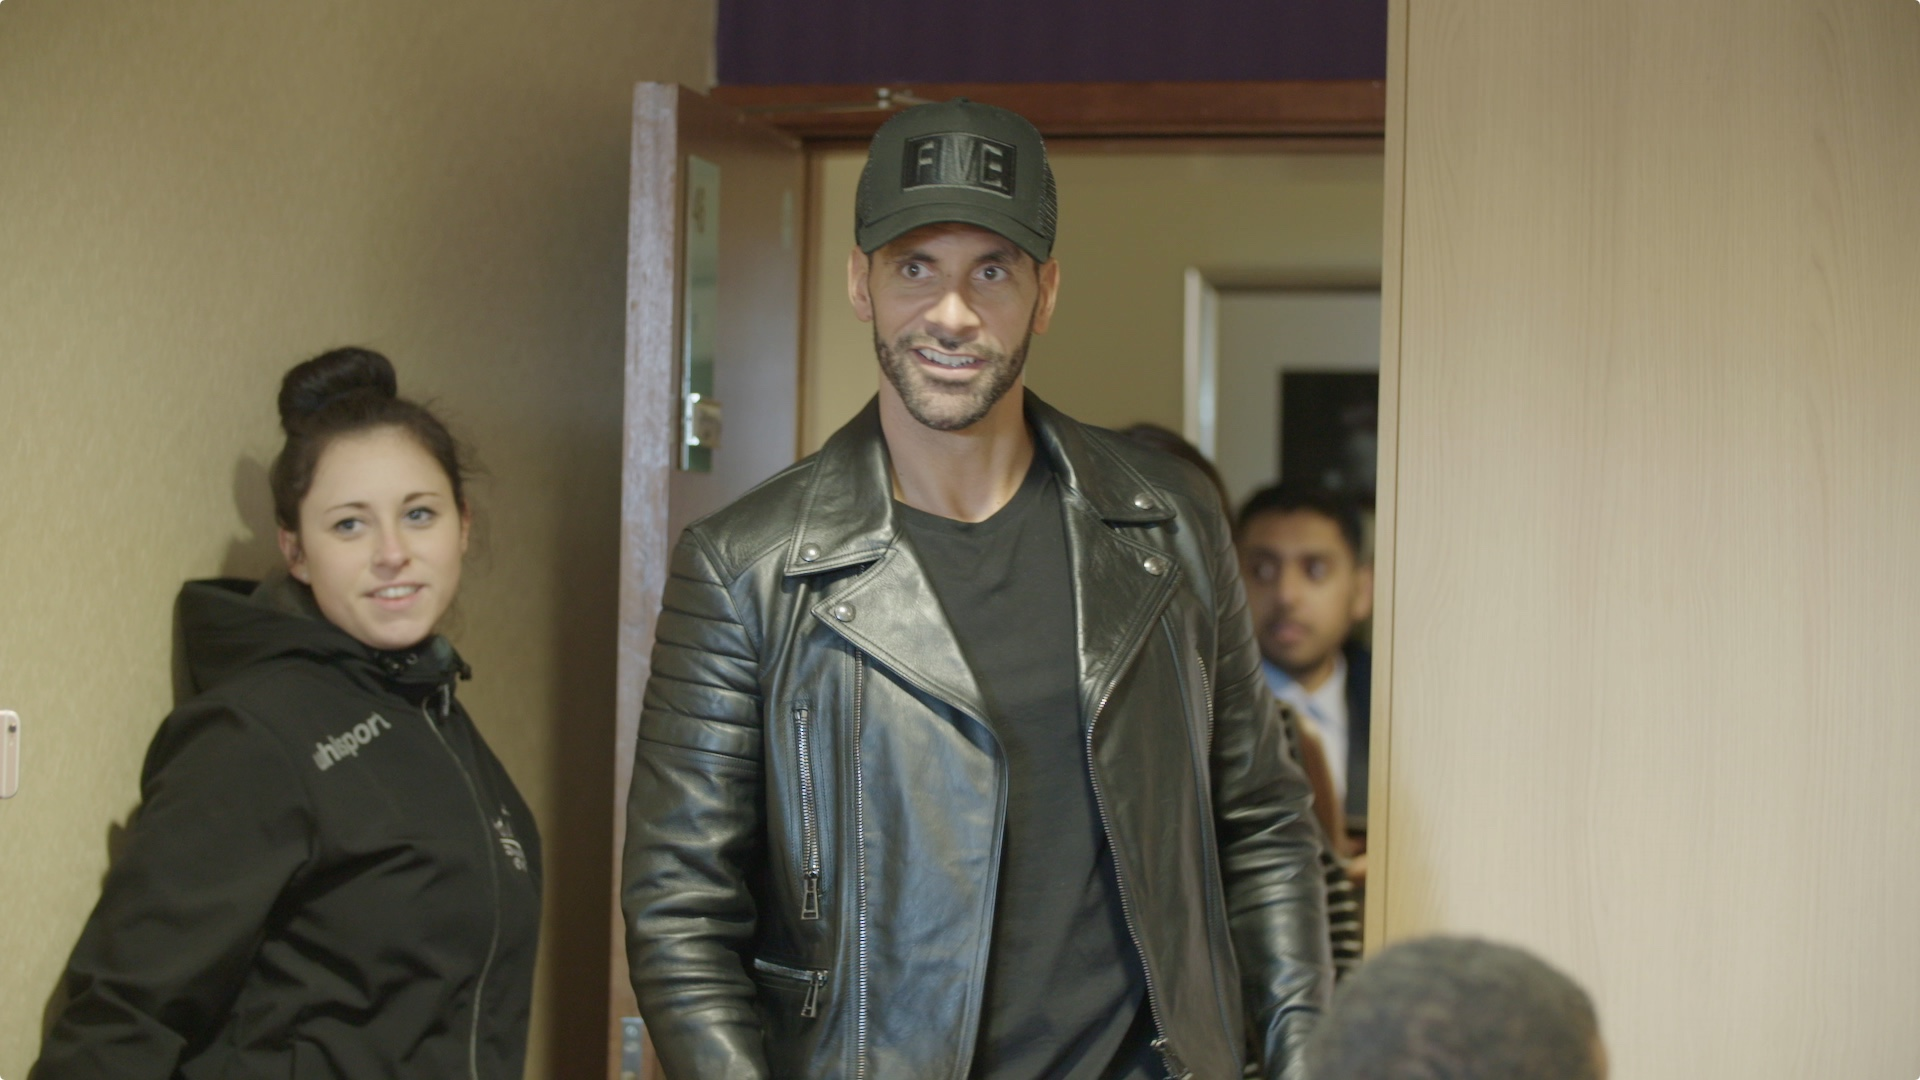 BT - 'Inspiring The Future' with Rio Ferdinand